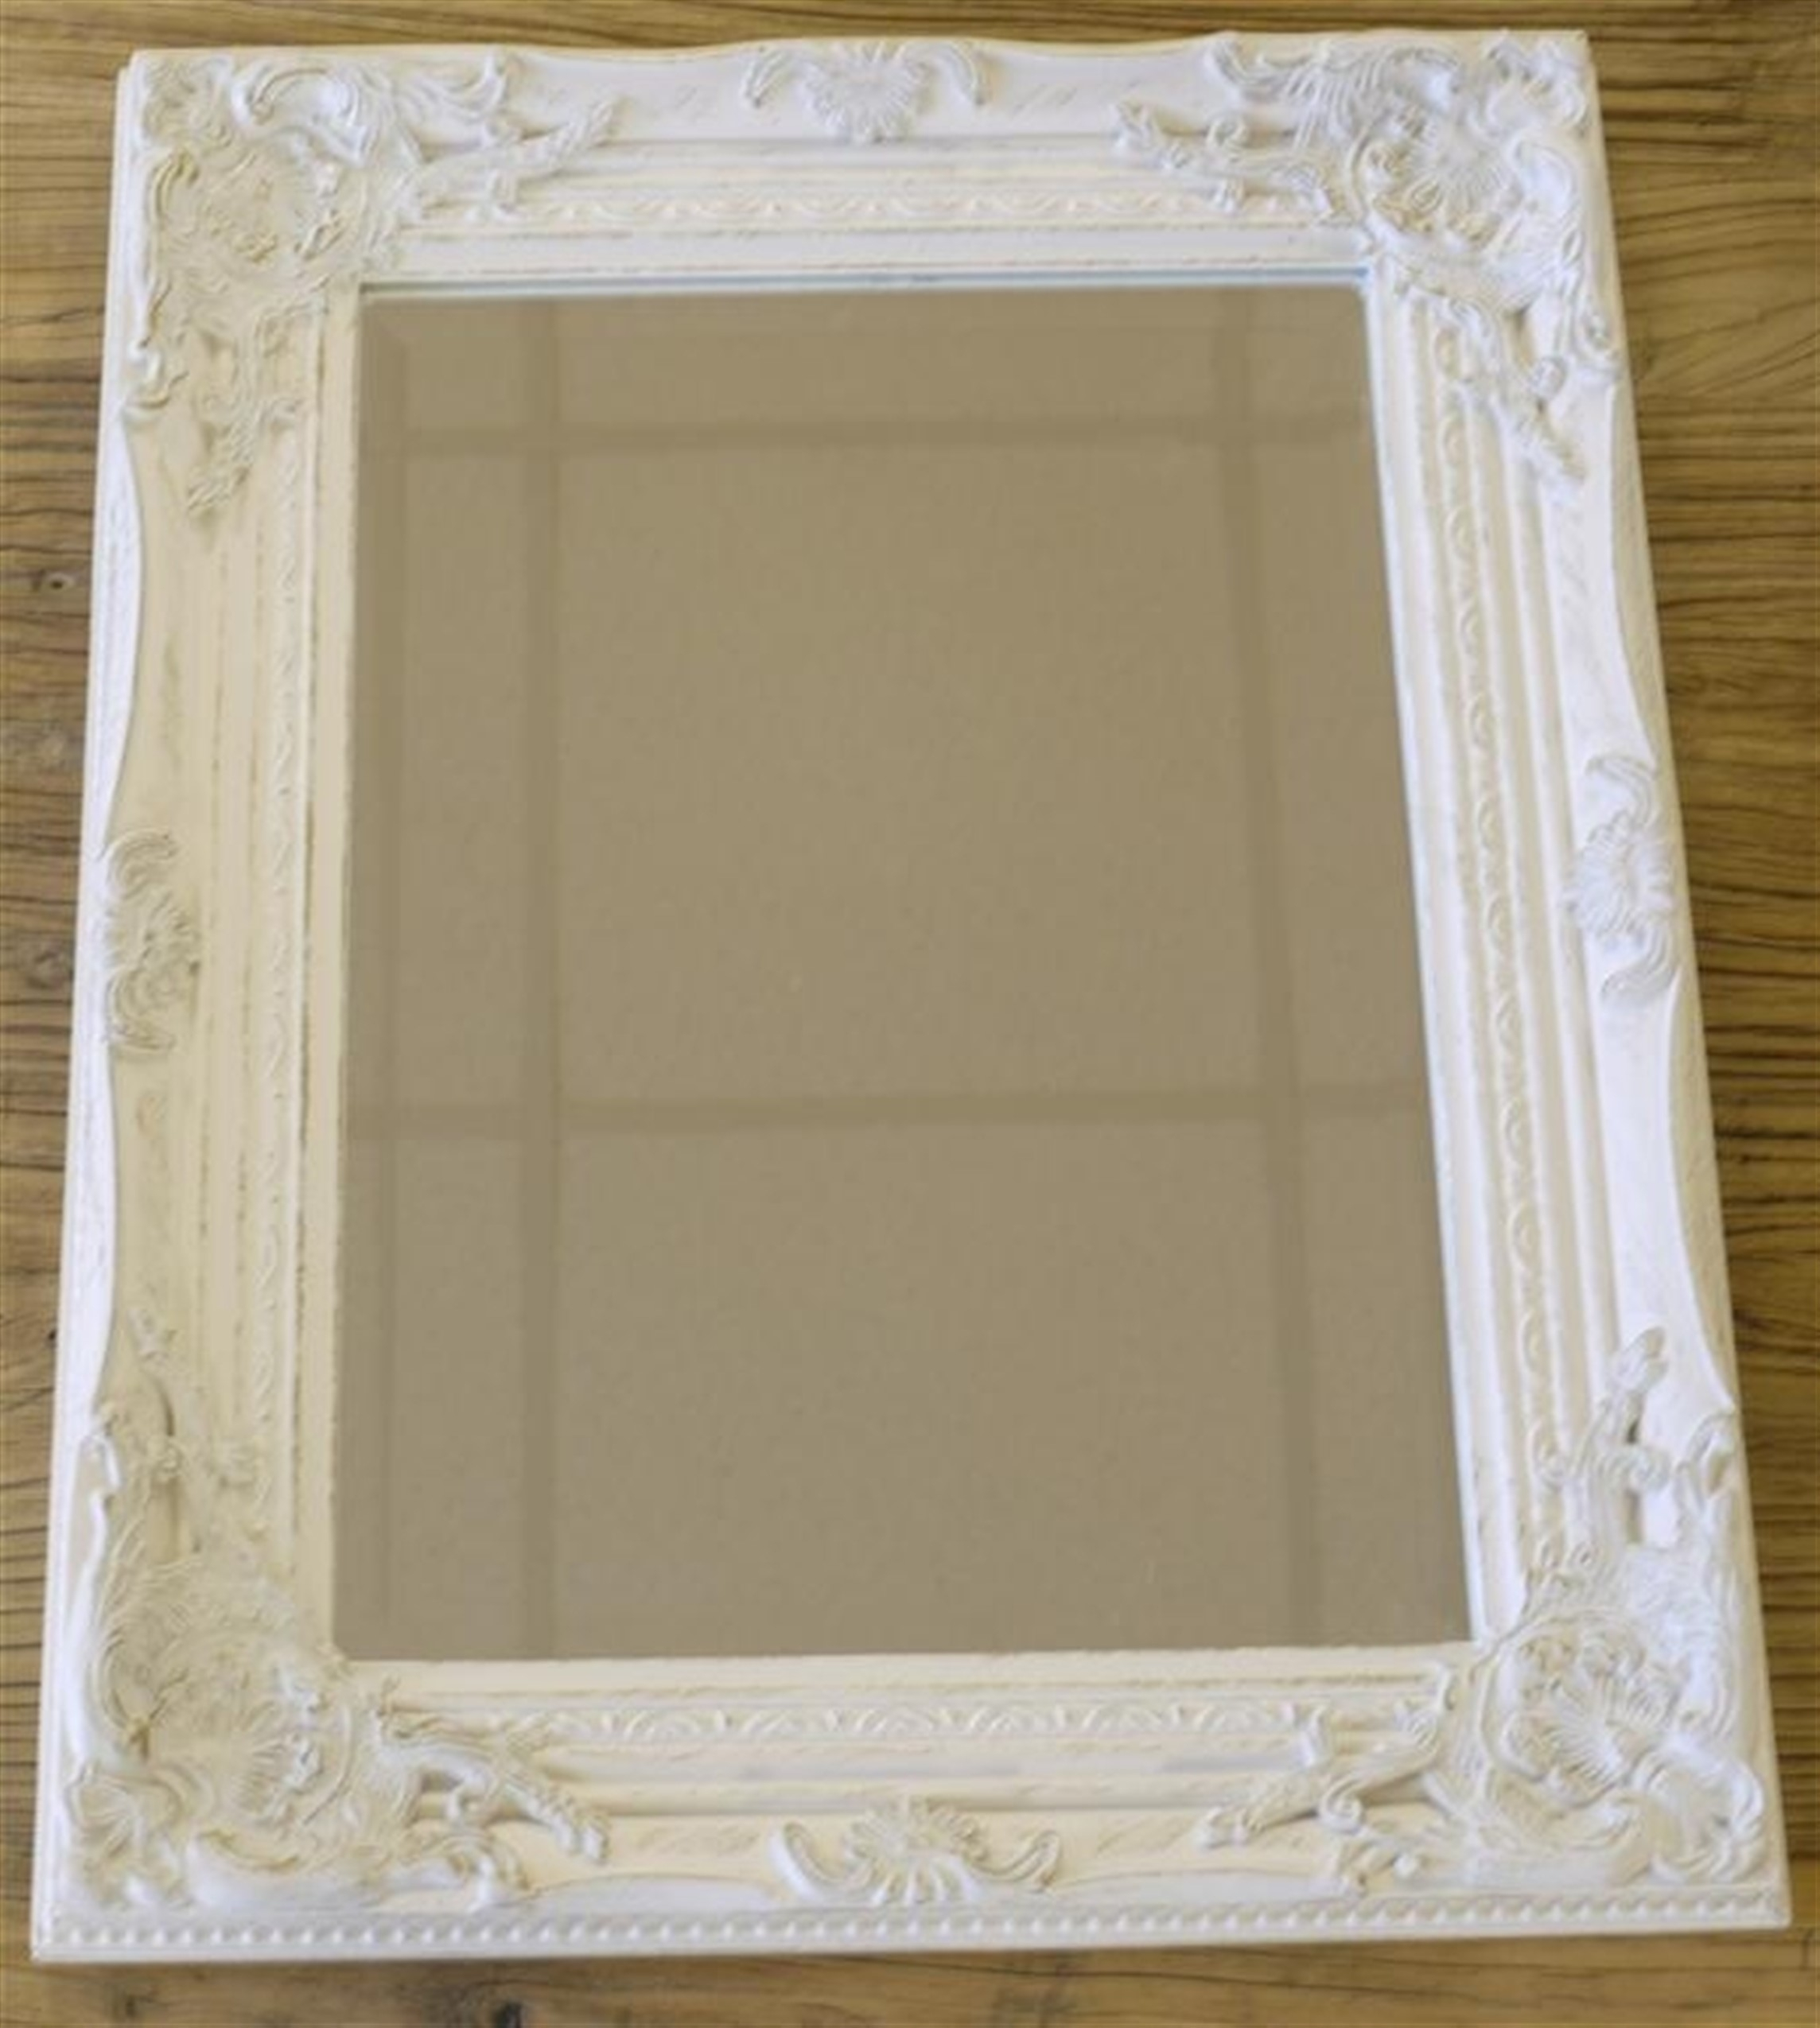 Silver Gilded Or White Shab Chic Bathroom Hall Wall Small Mirror Intended For Round Shabby Chic Mirror (Image 14 of 15)